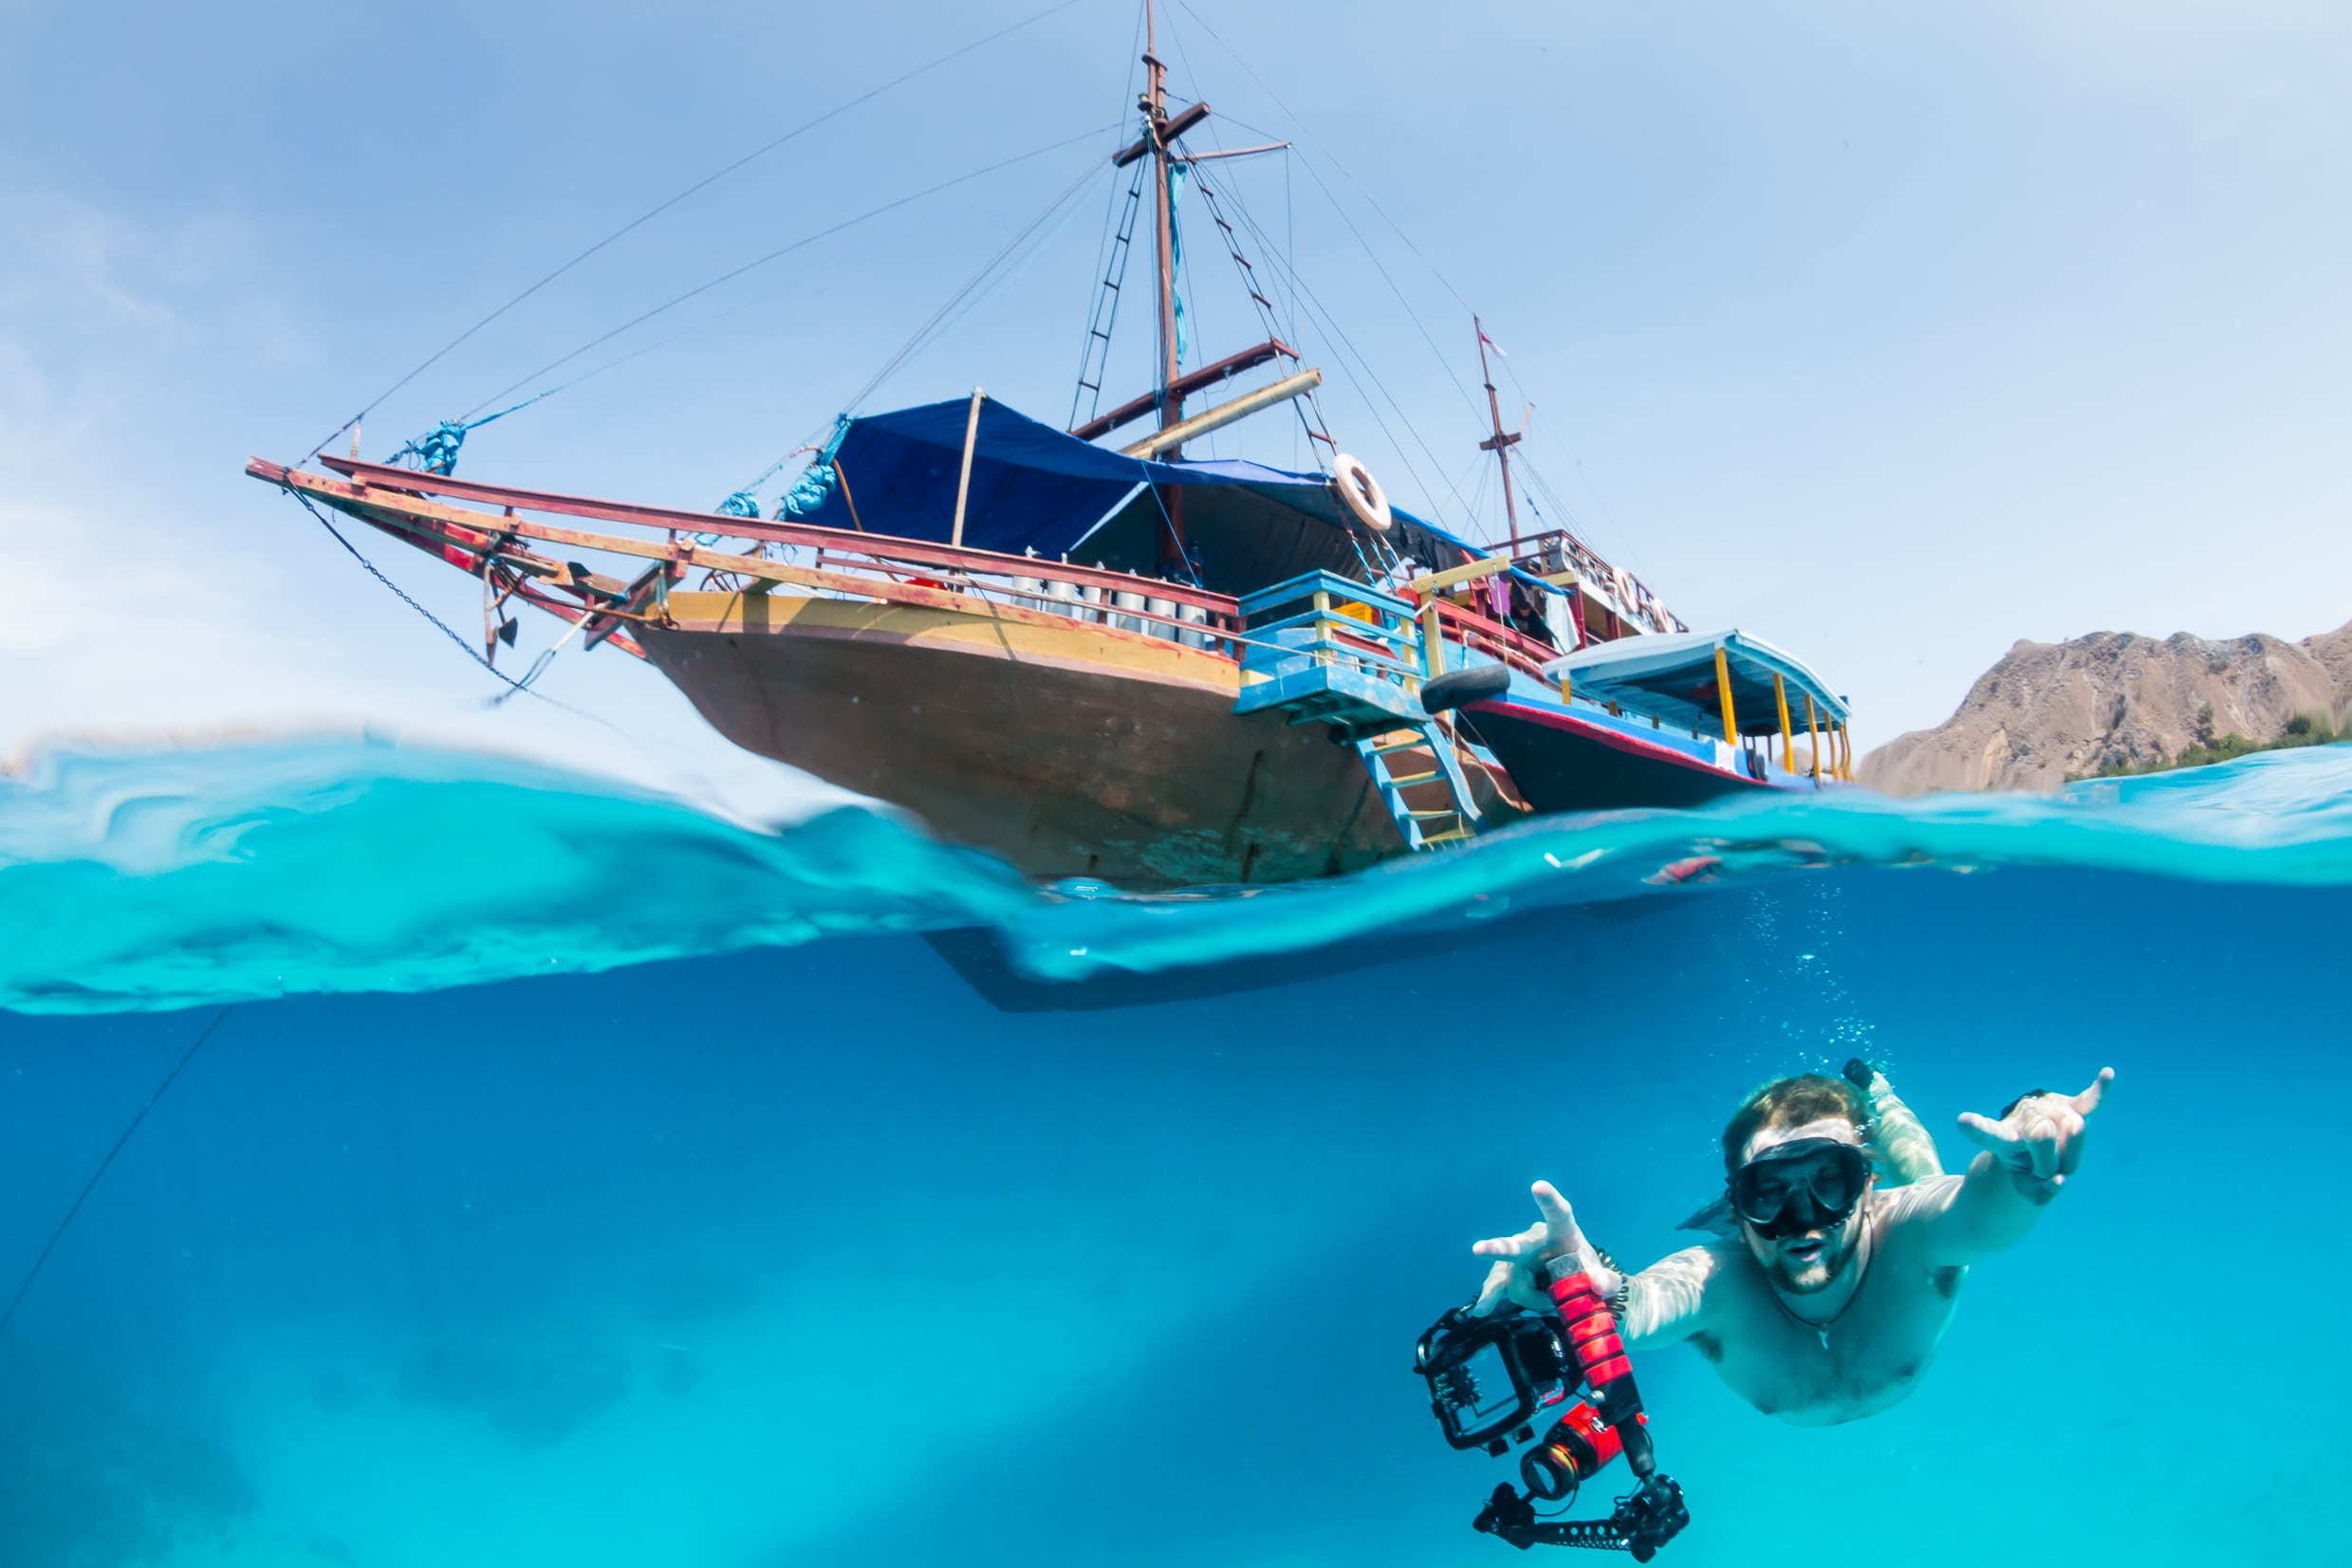 A freediver swims underwater next to a traditional boat on a tropical coral reef